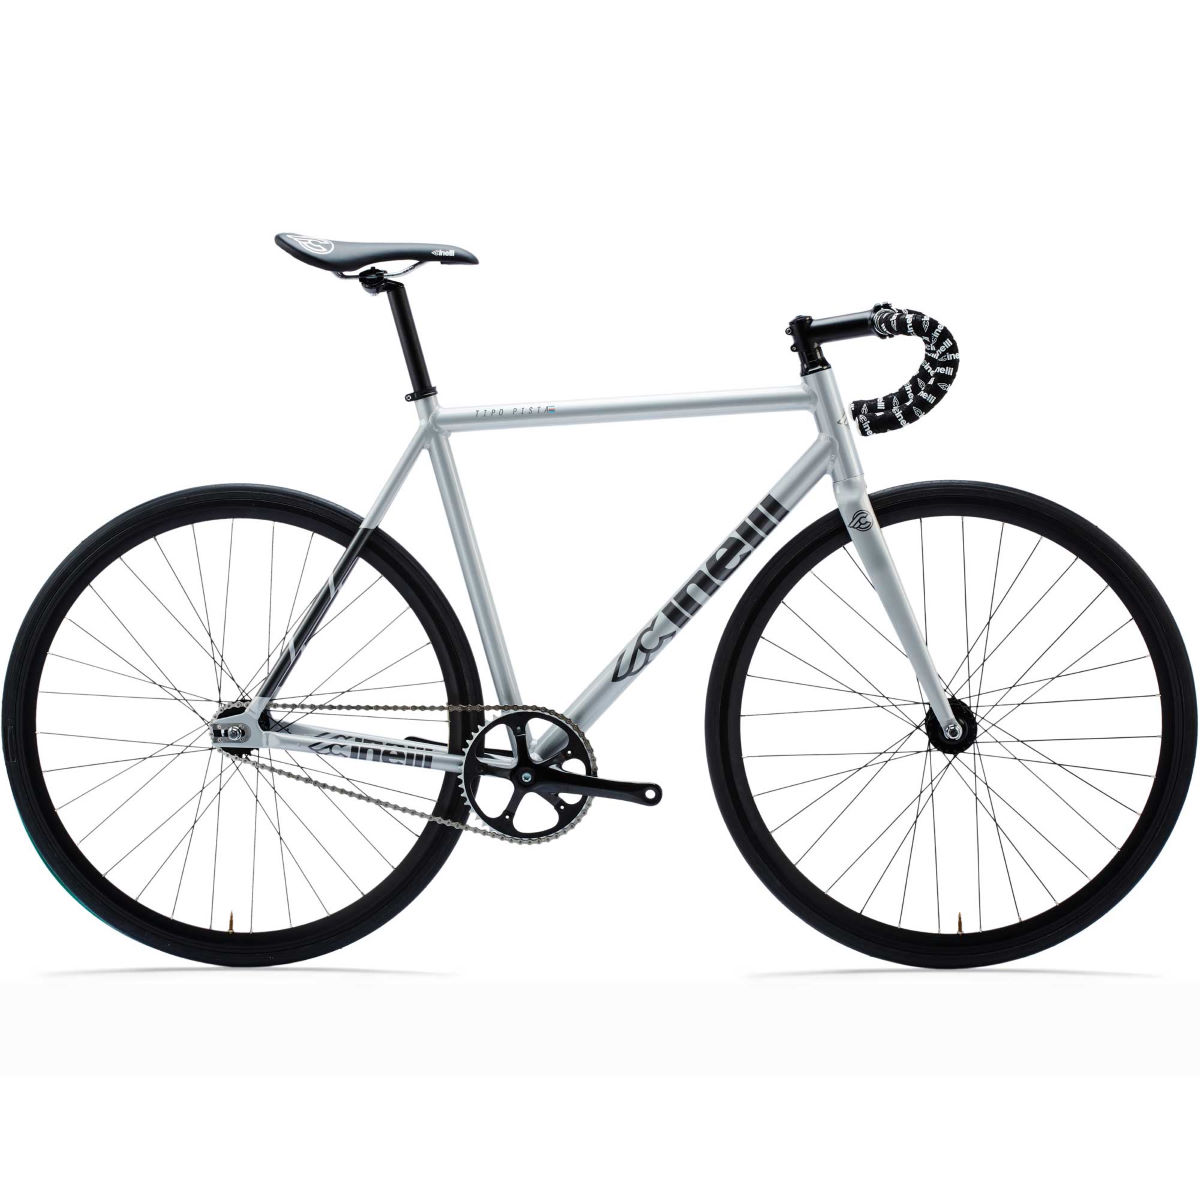 Vélo single speed Cinelli Tipo Pista (2017) - XS Stock Bike Silver